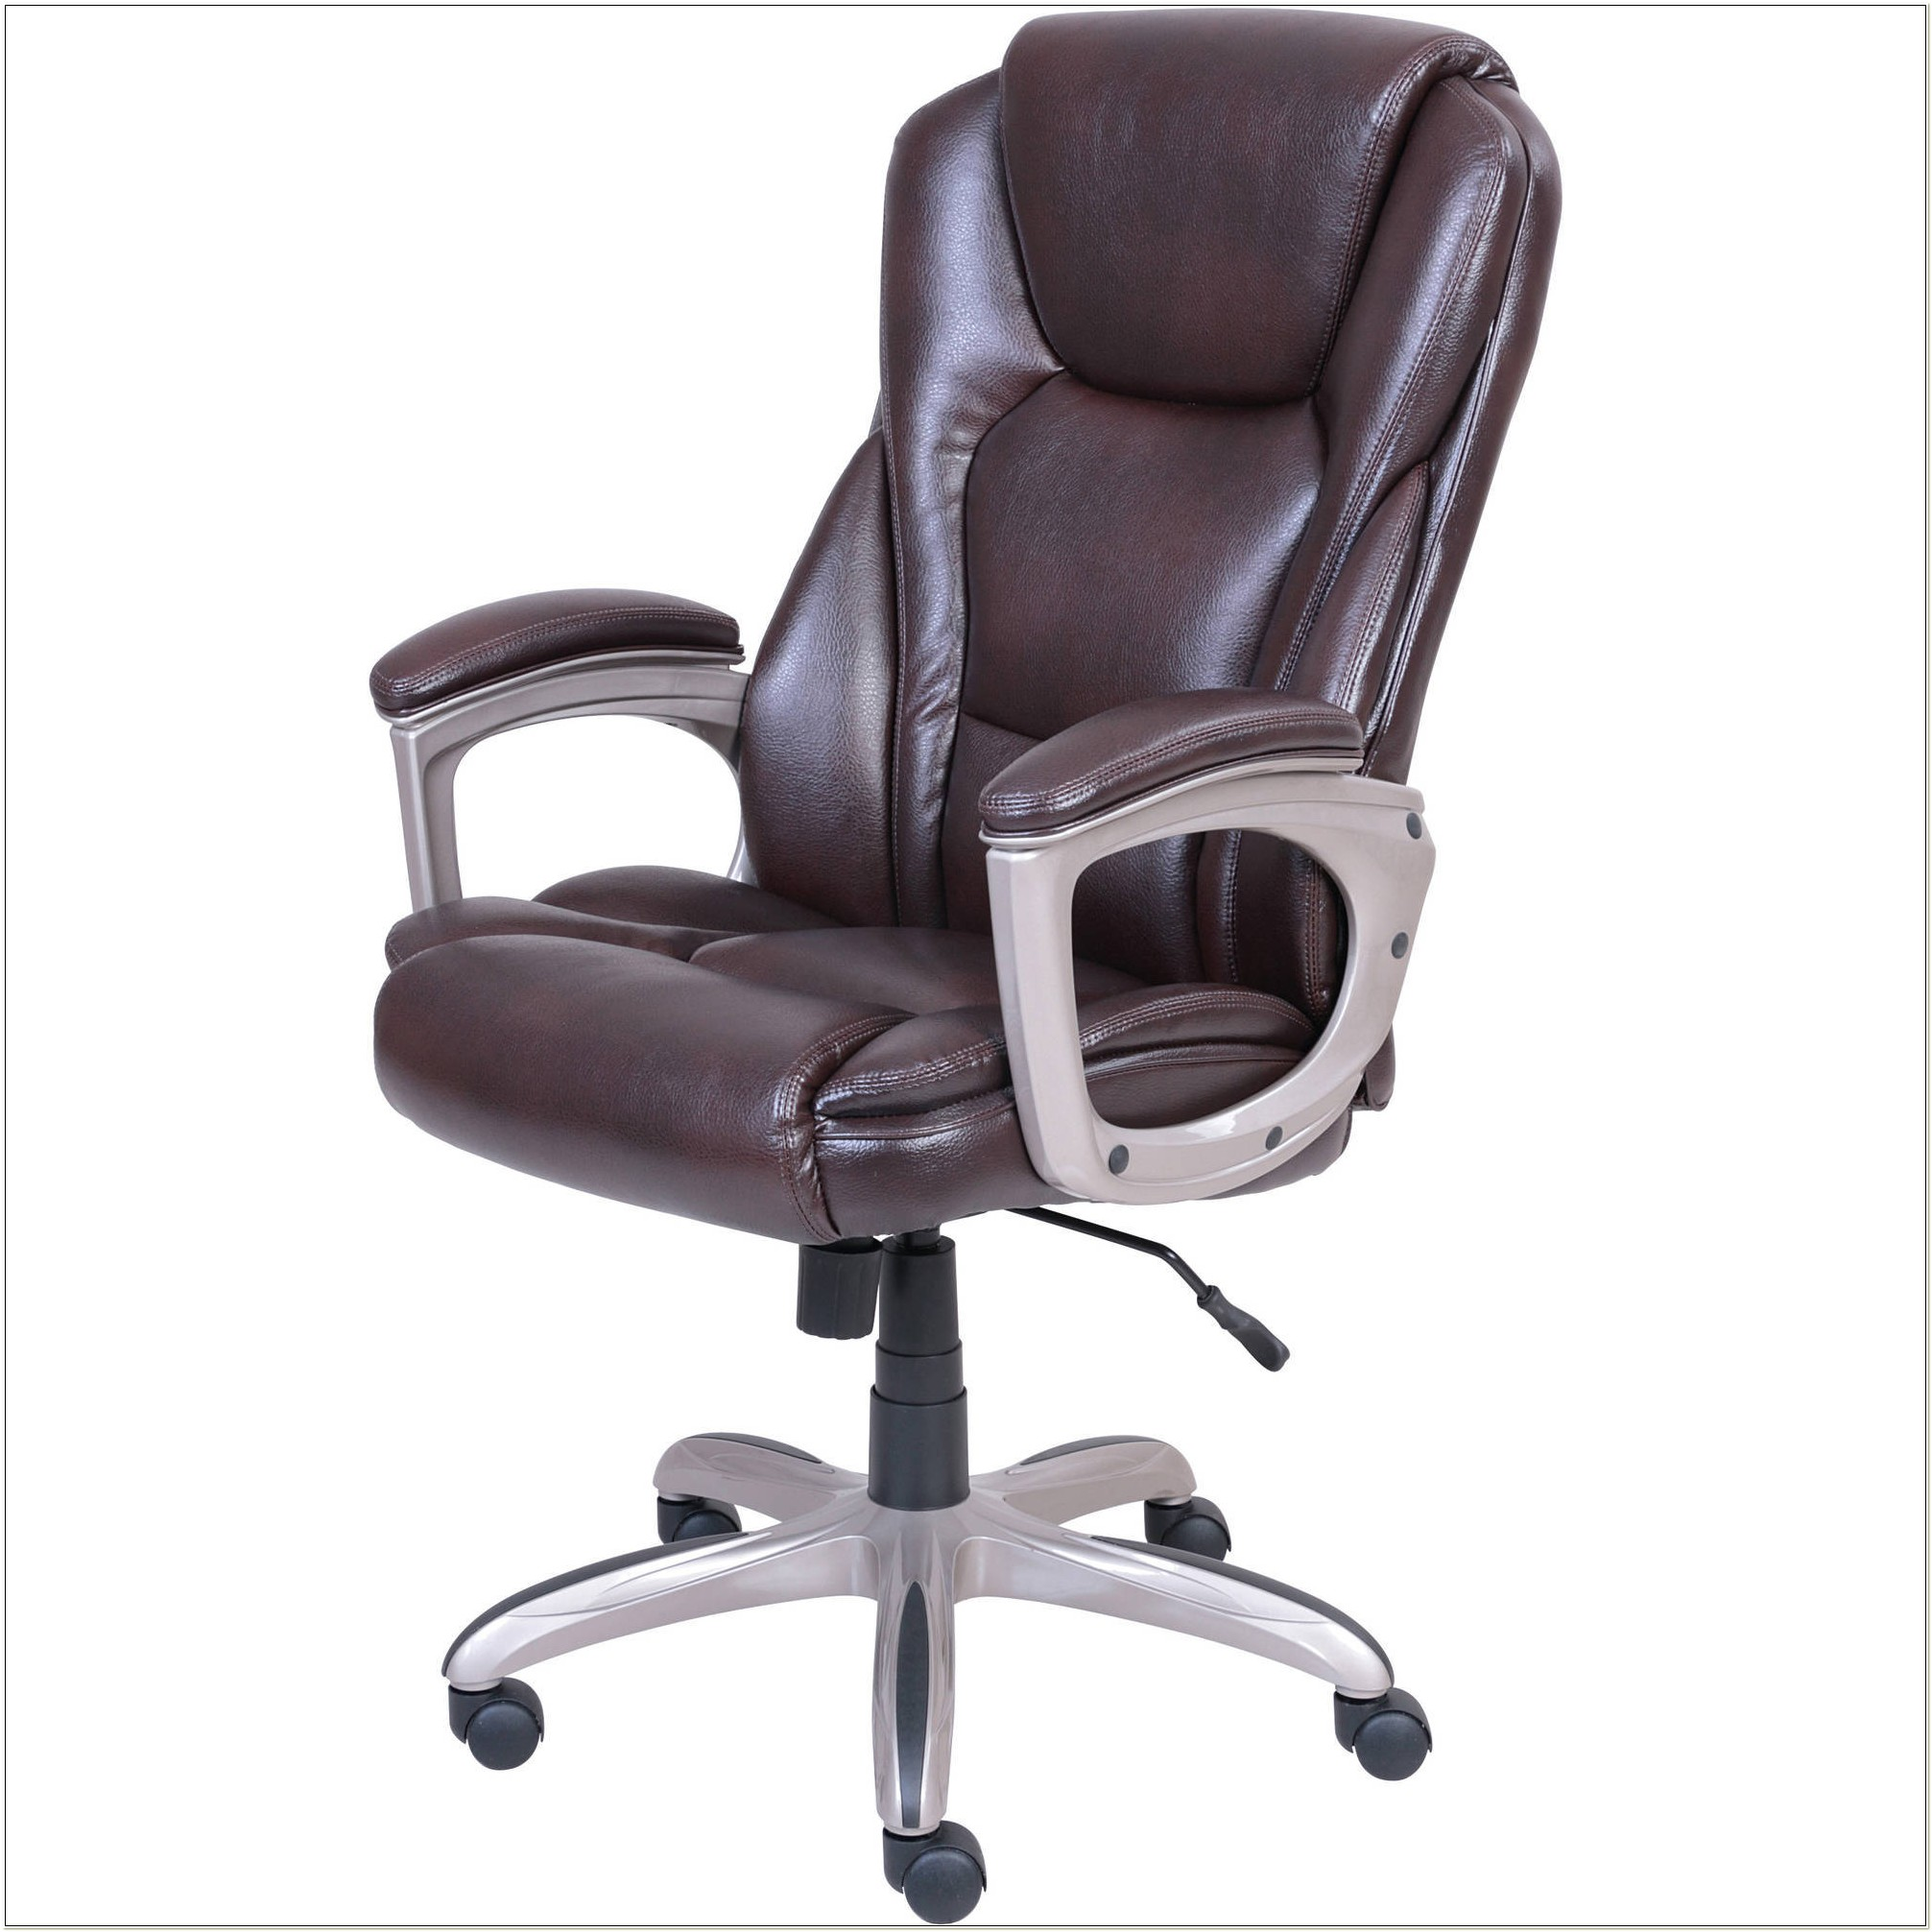 Serta Big And Tall Chair